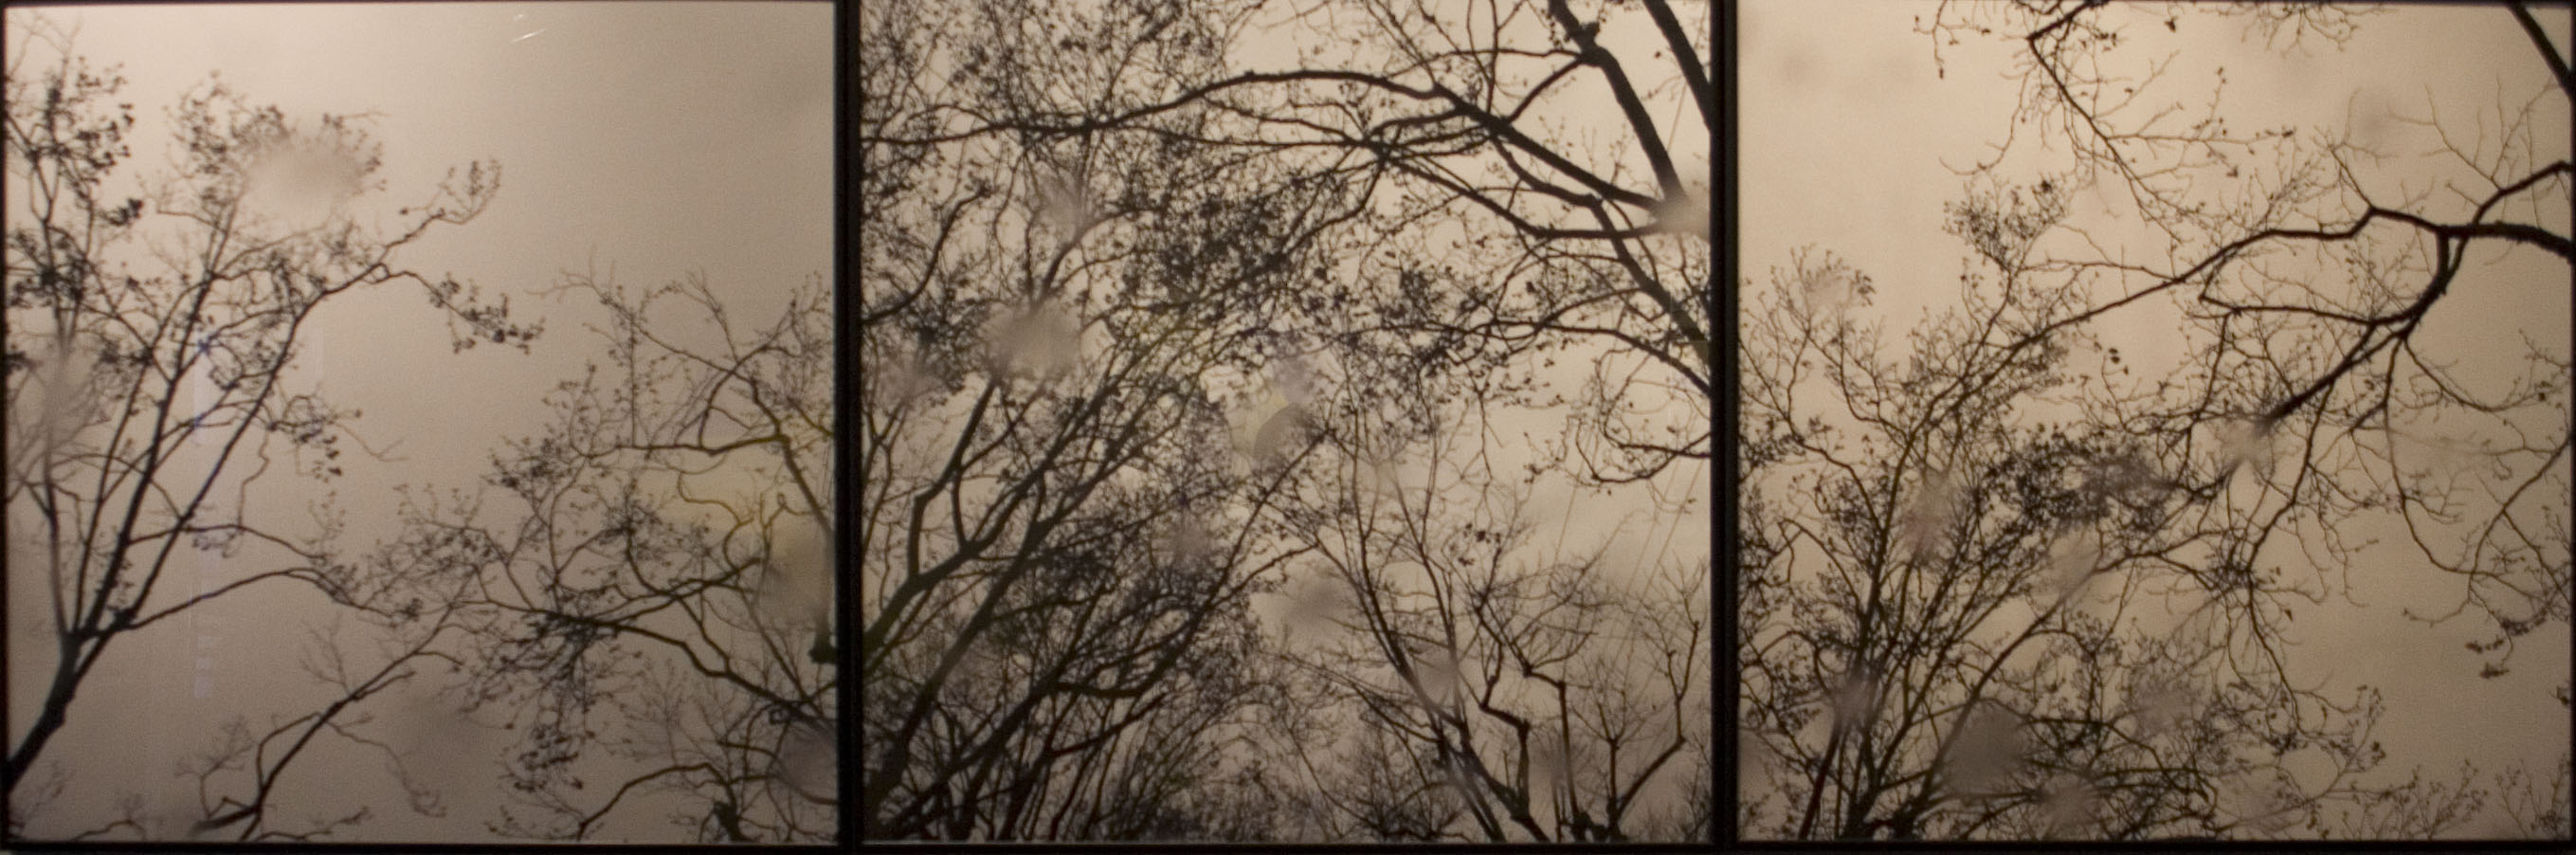 "Jan Watten, ""Gibbons in the Rain,"" Photograph."